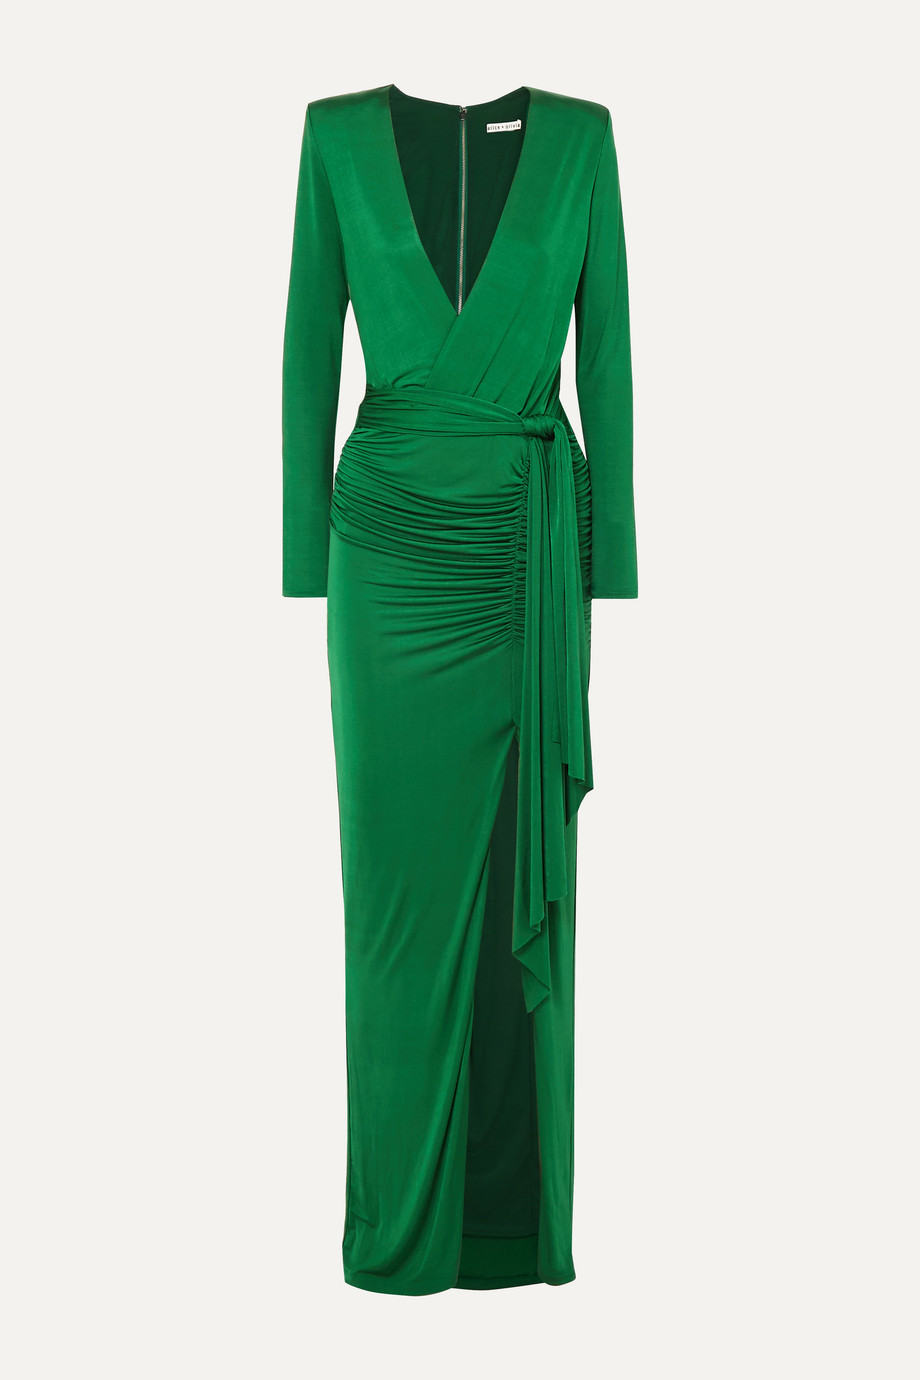 Alice + Olivia Kyra wrap-effect ruched stretch-jersey maxi dress